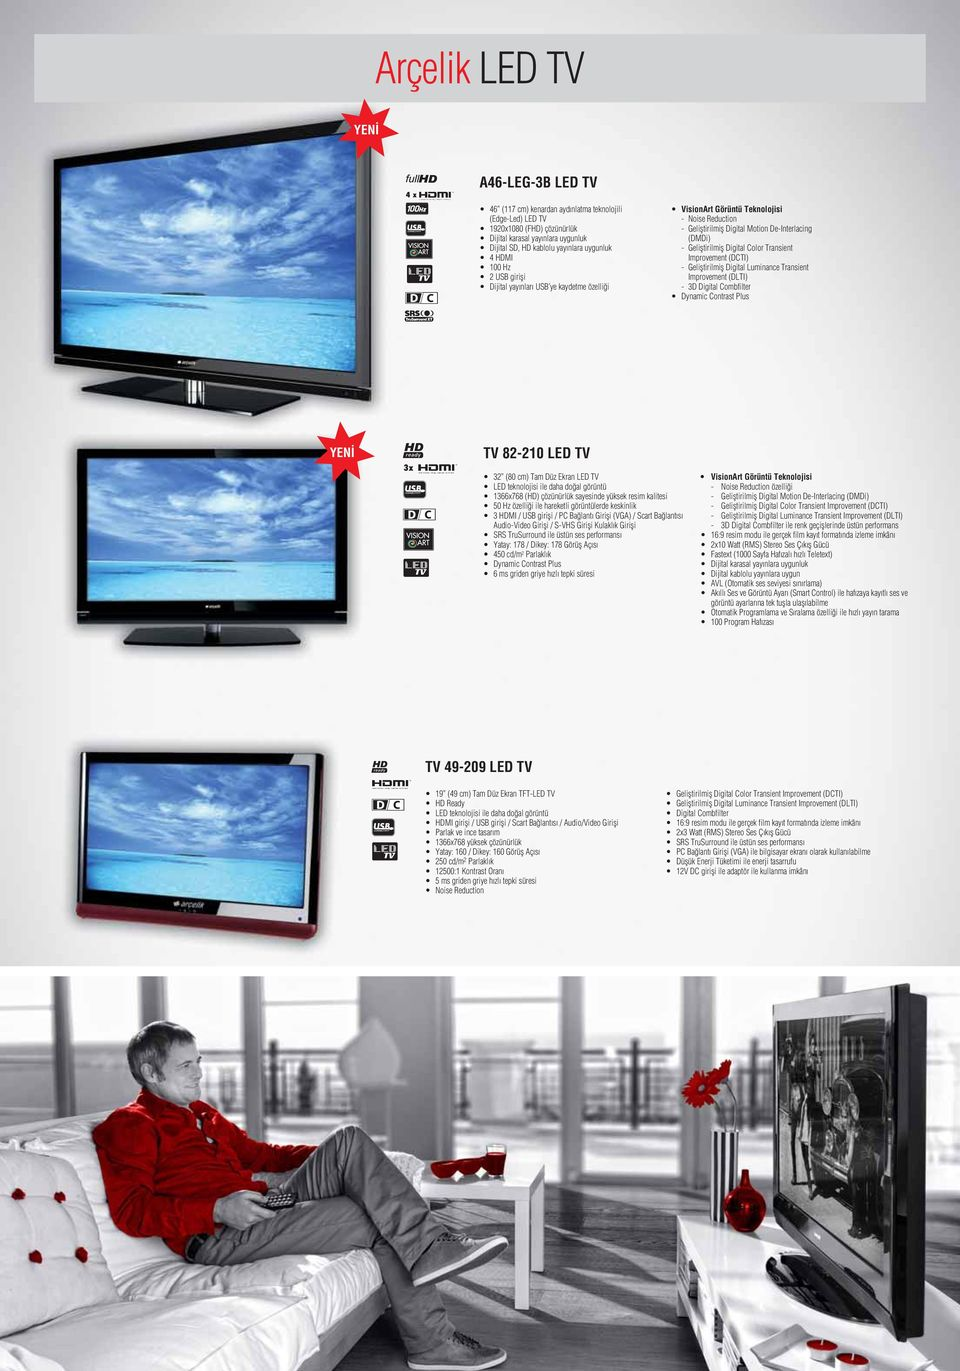 Digital Color Transient Improvement (DCTI) - Gelifltirilmifl Digital Luminance Transient Improvement (DLTI) - 3D Digital Combfilter Dynamic Contrast Plus 3x TV 82-210 LED TV 32 (80 cm) Tam Düz Ekran